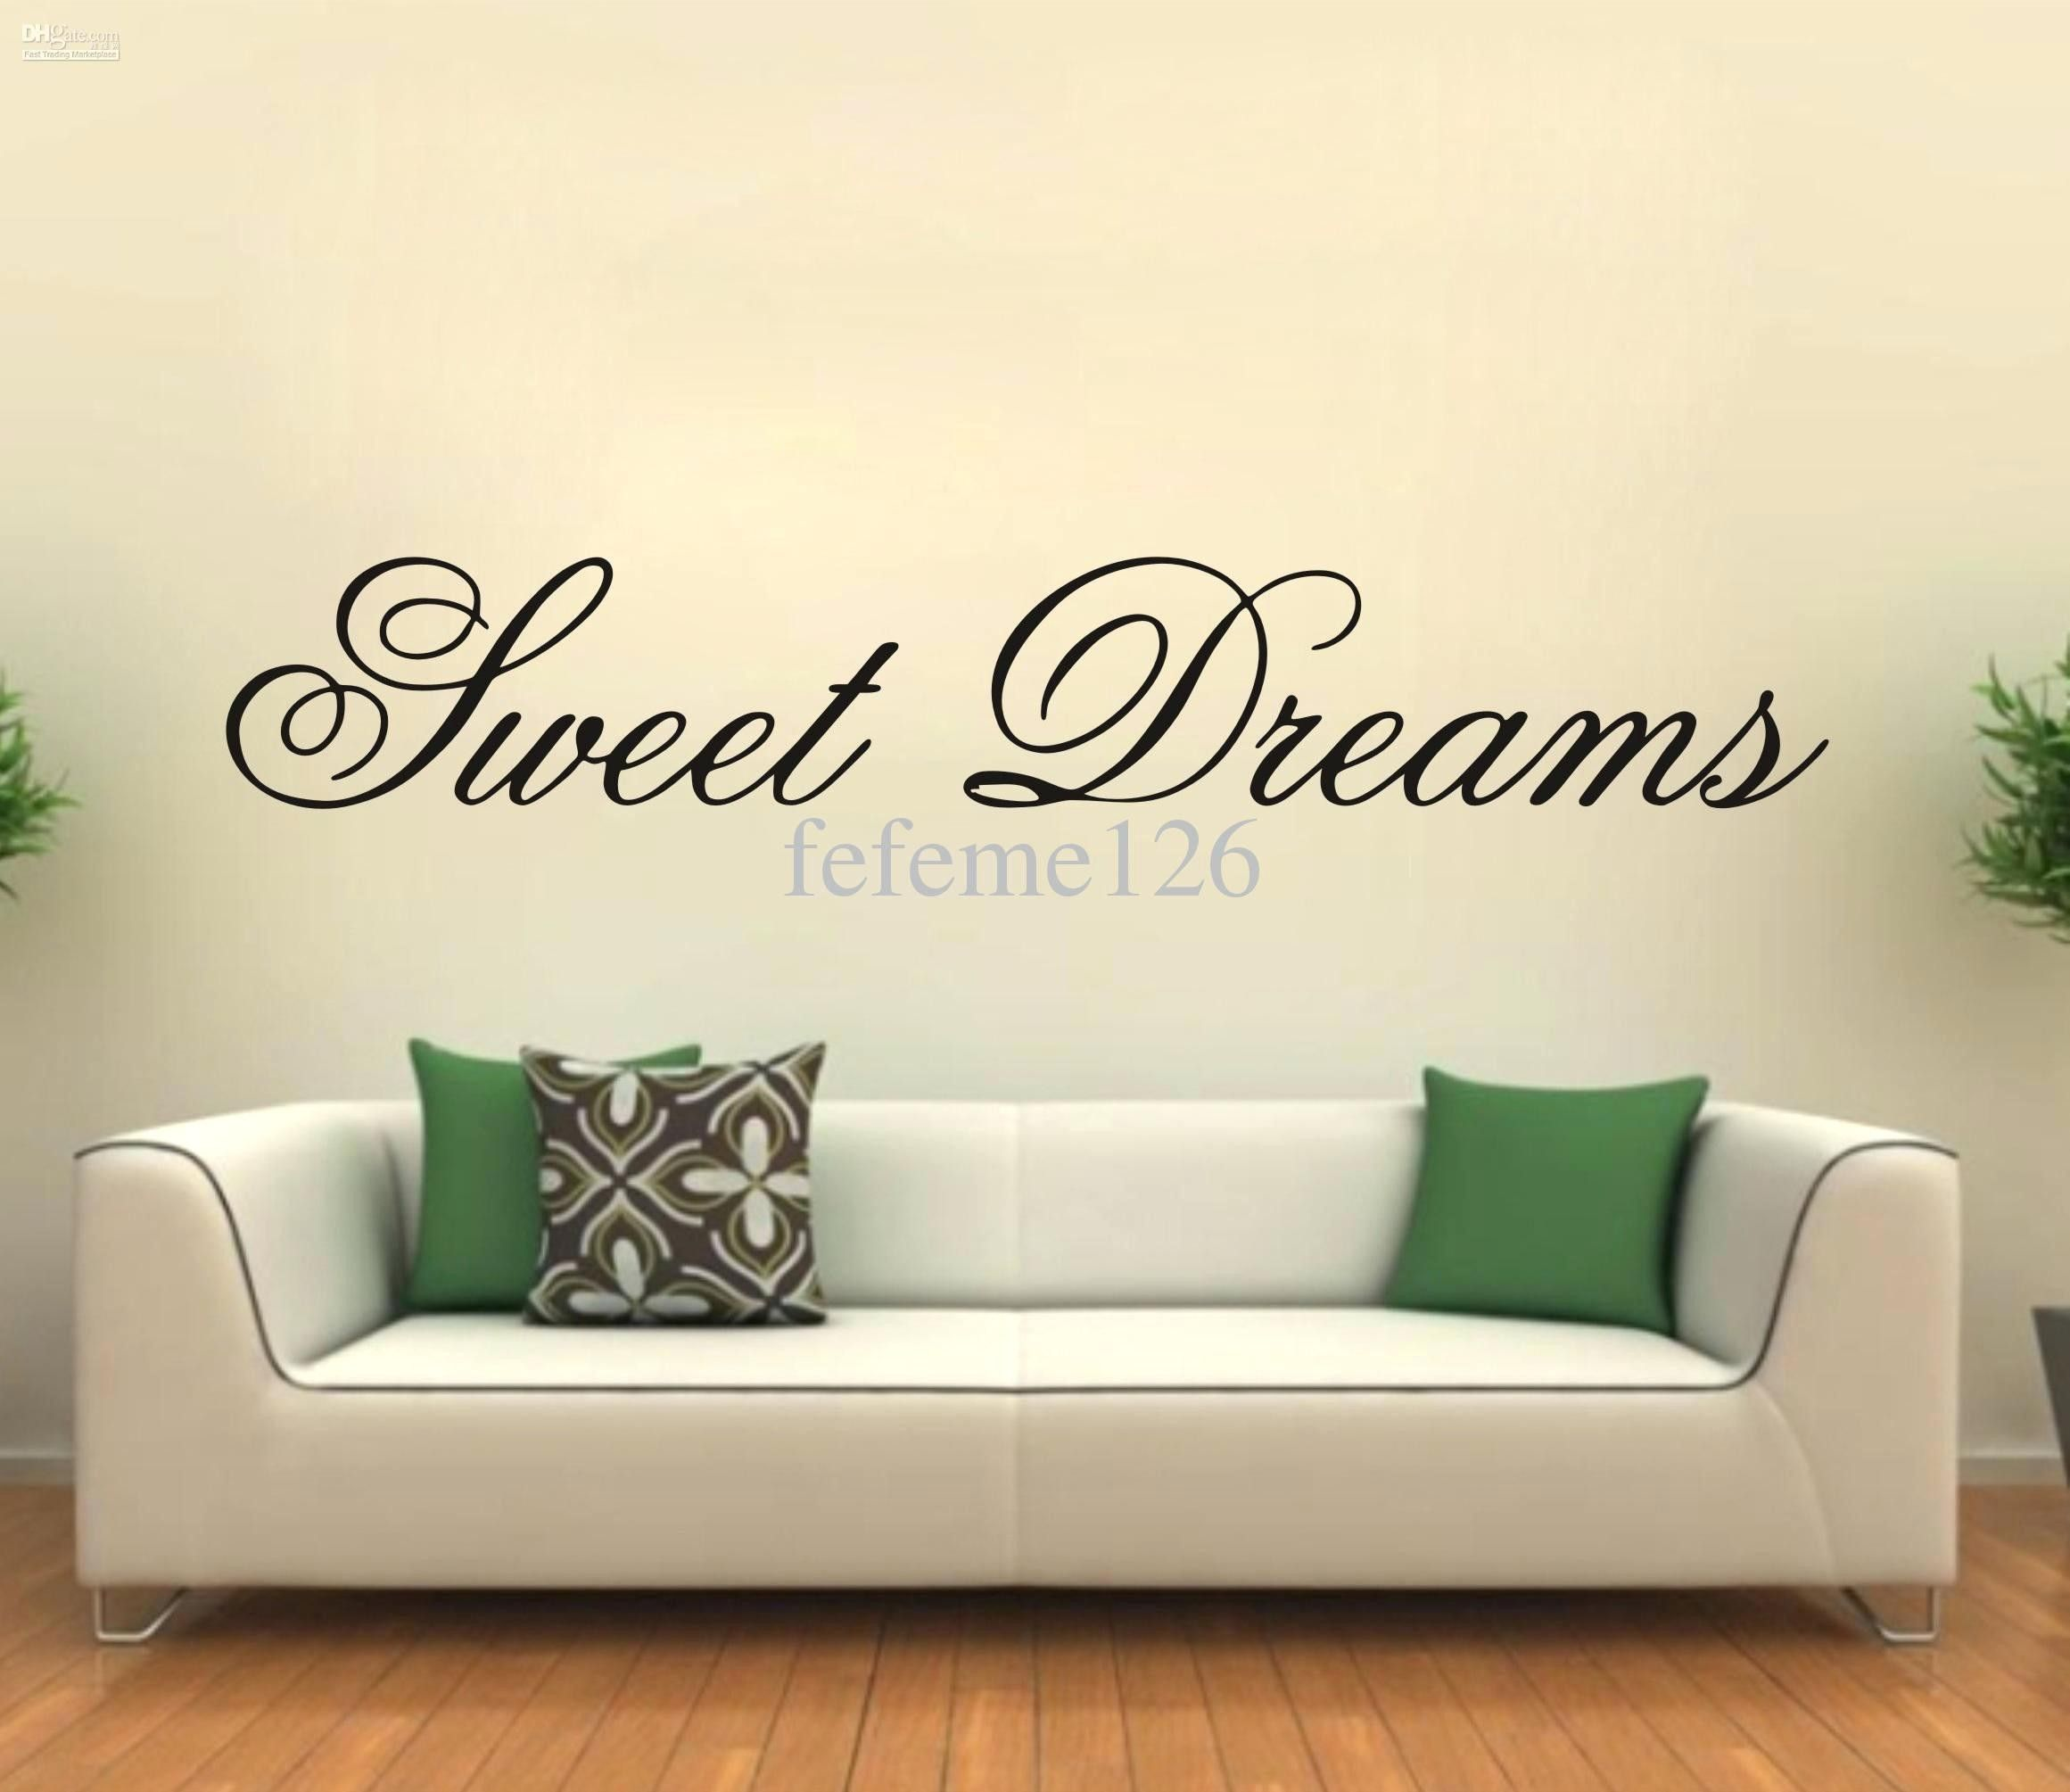 Image result for wall decal quotes for bedroom master bdrm in